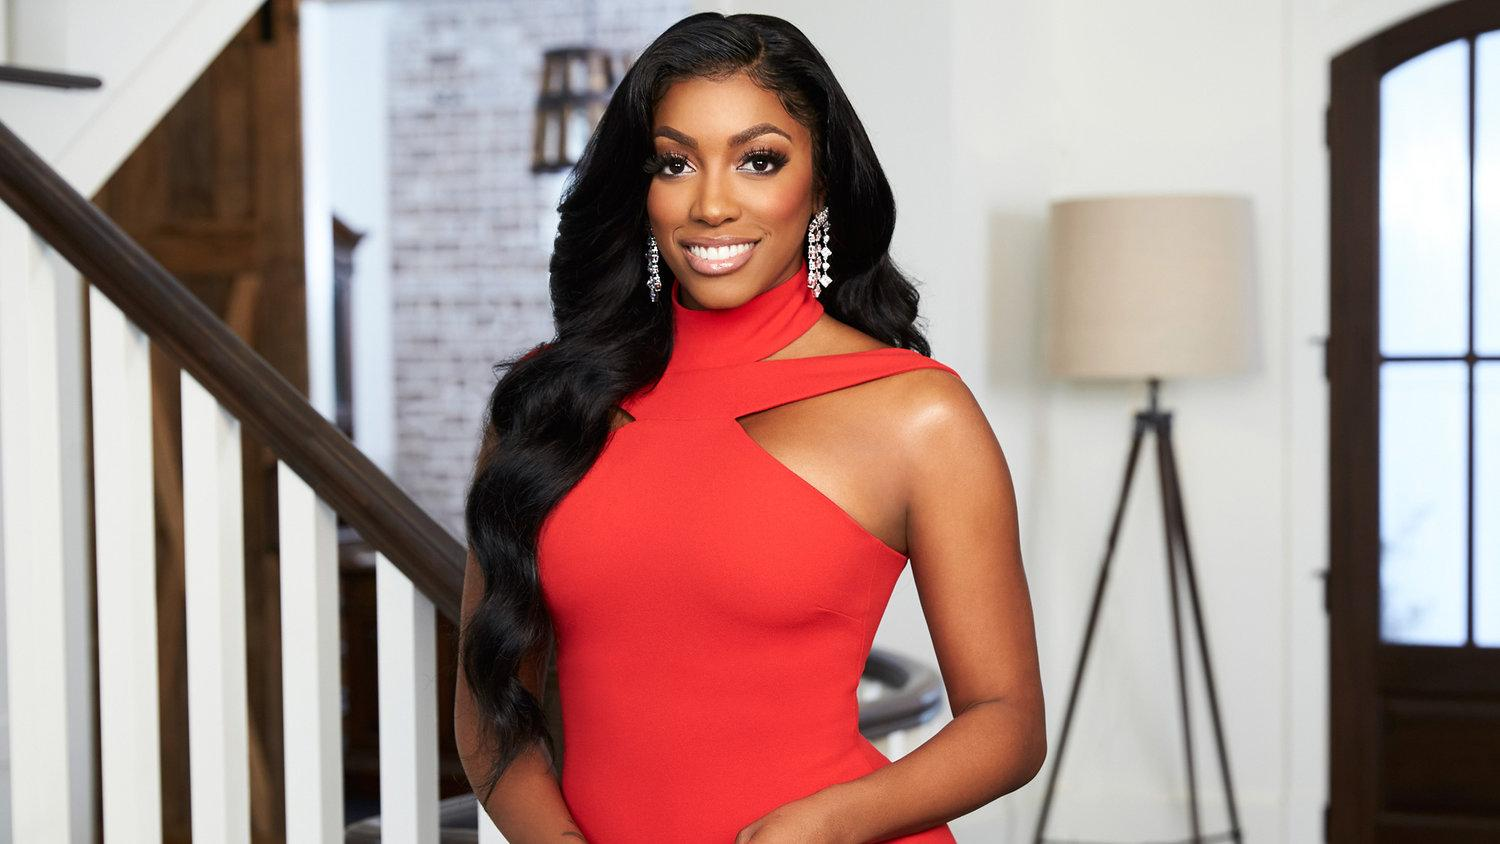 Porsha Williams Tells Fans She Will Continue To Hustle For Her Daughter